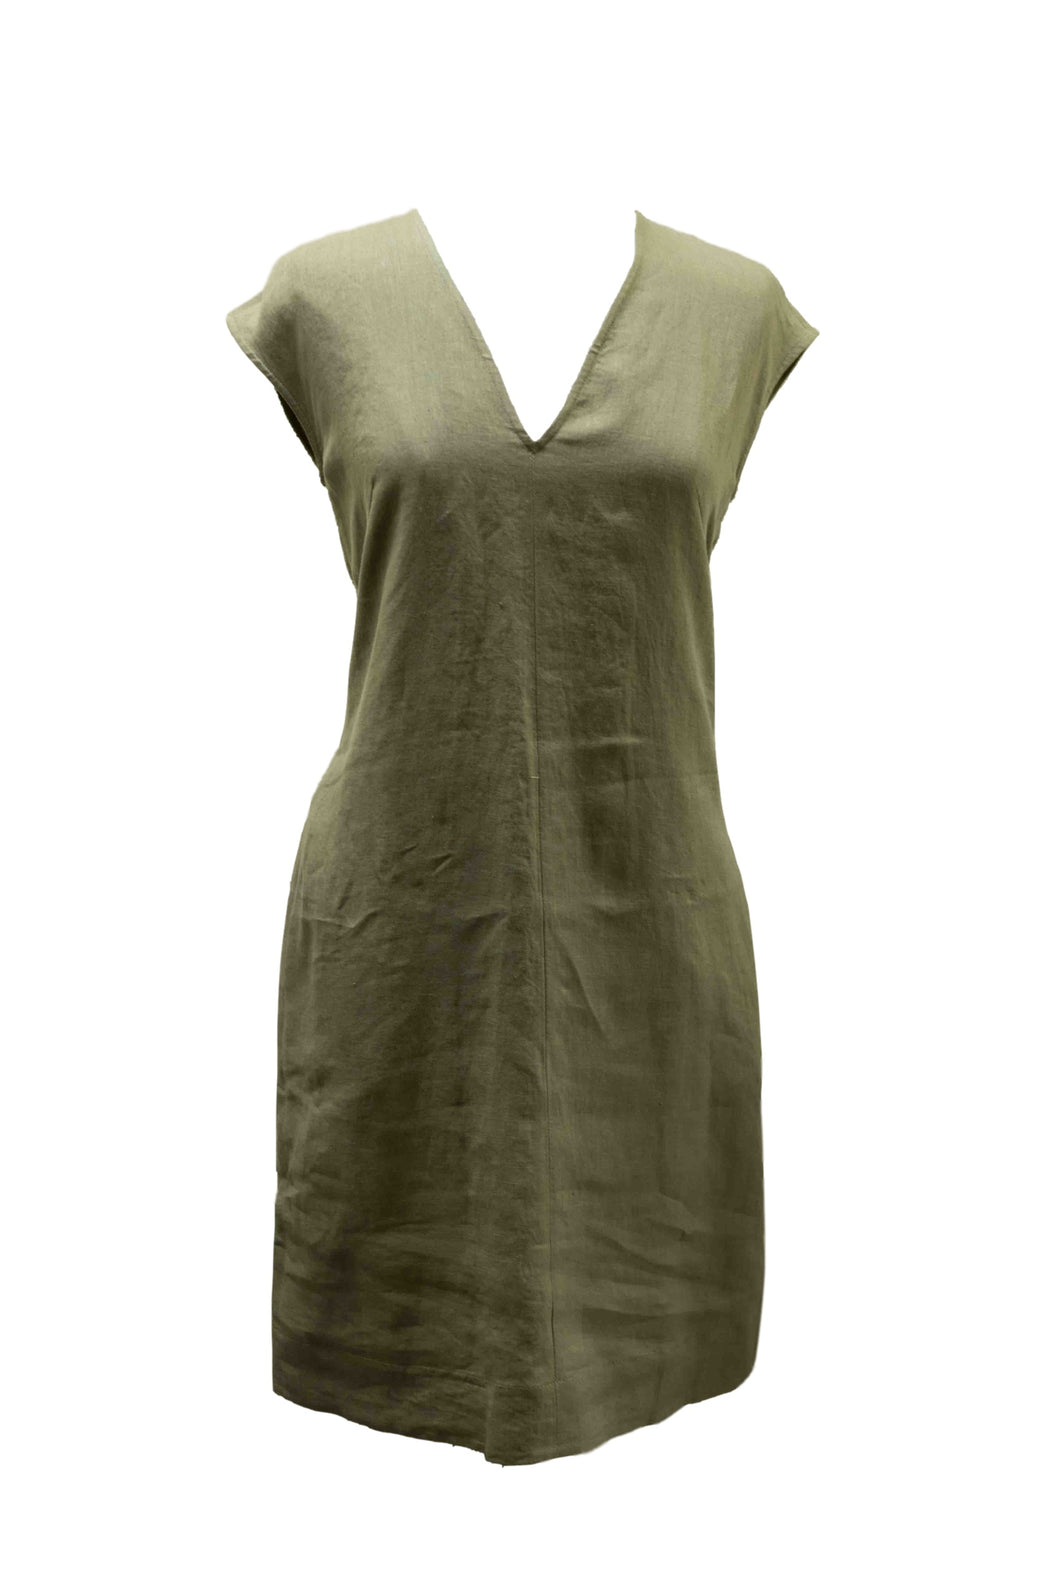 Olive Green Sleeveless Dress